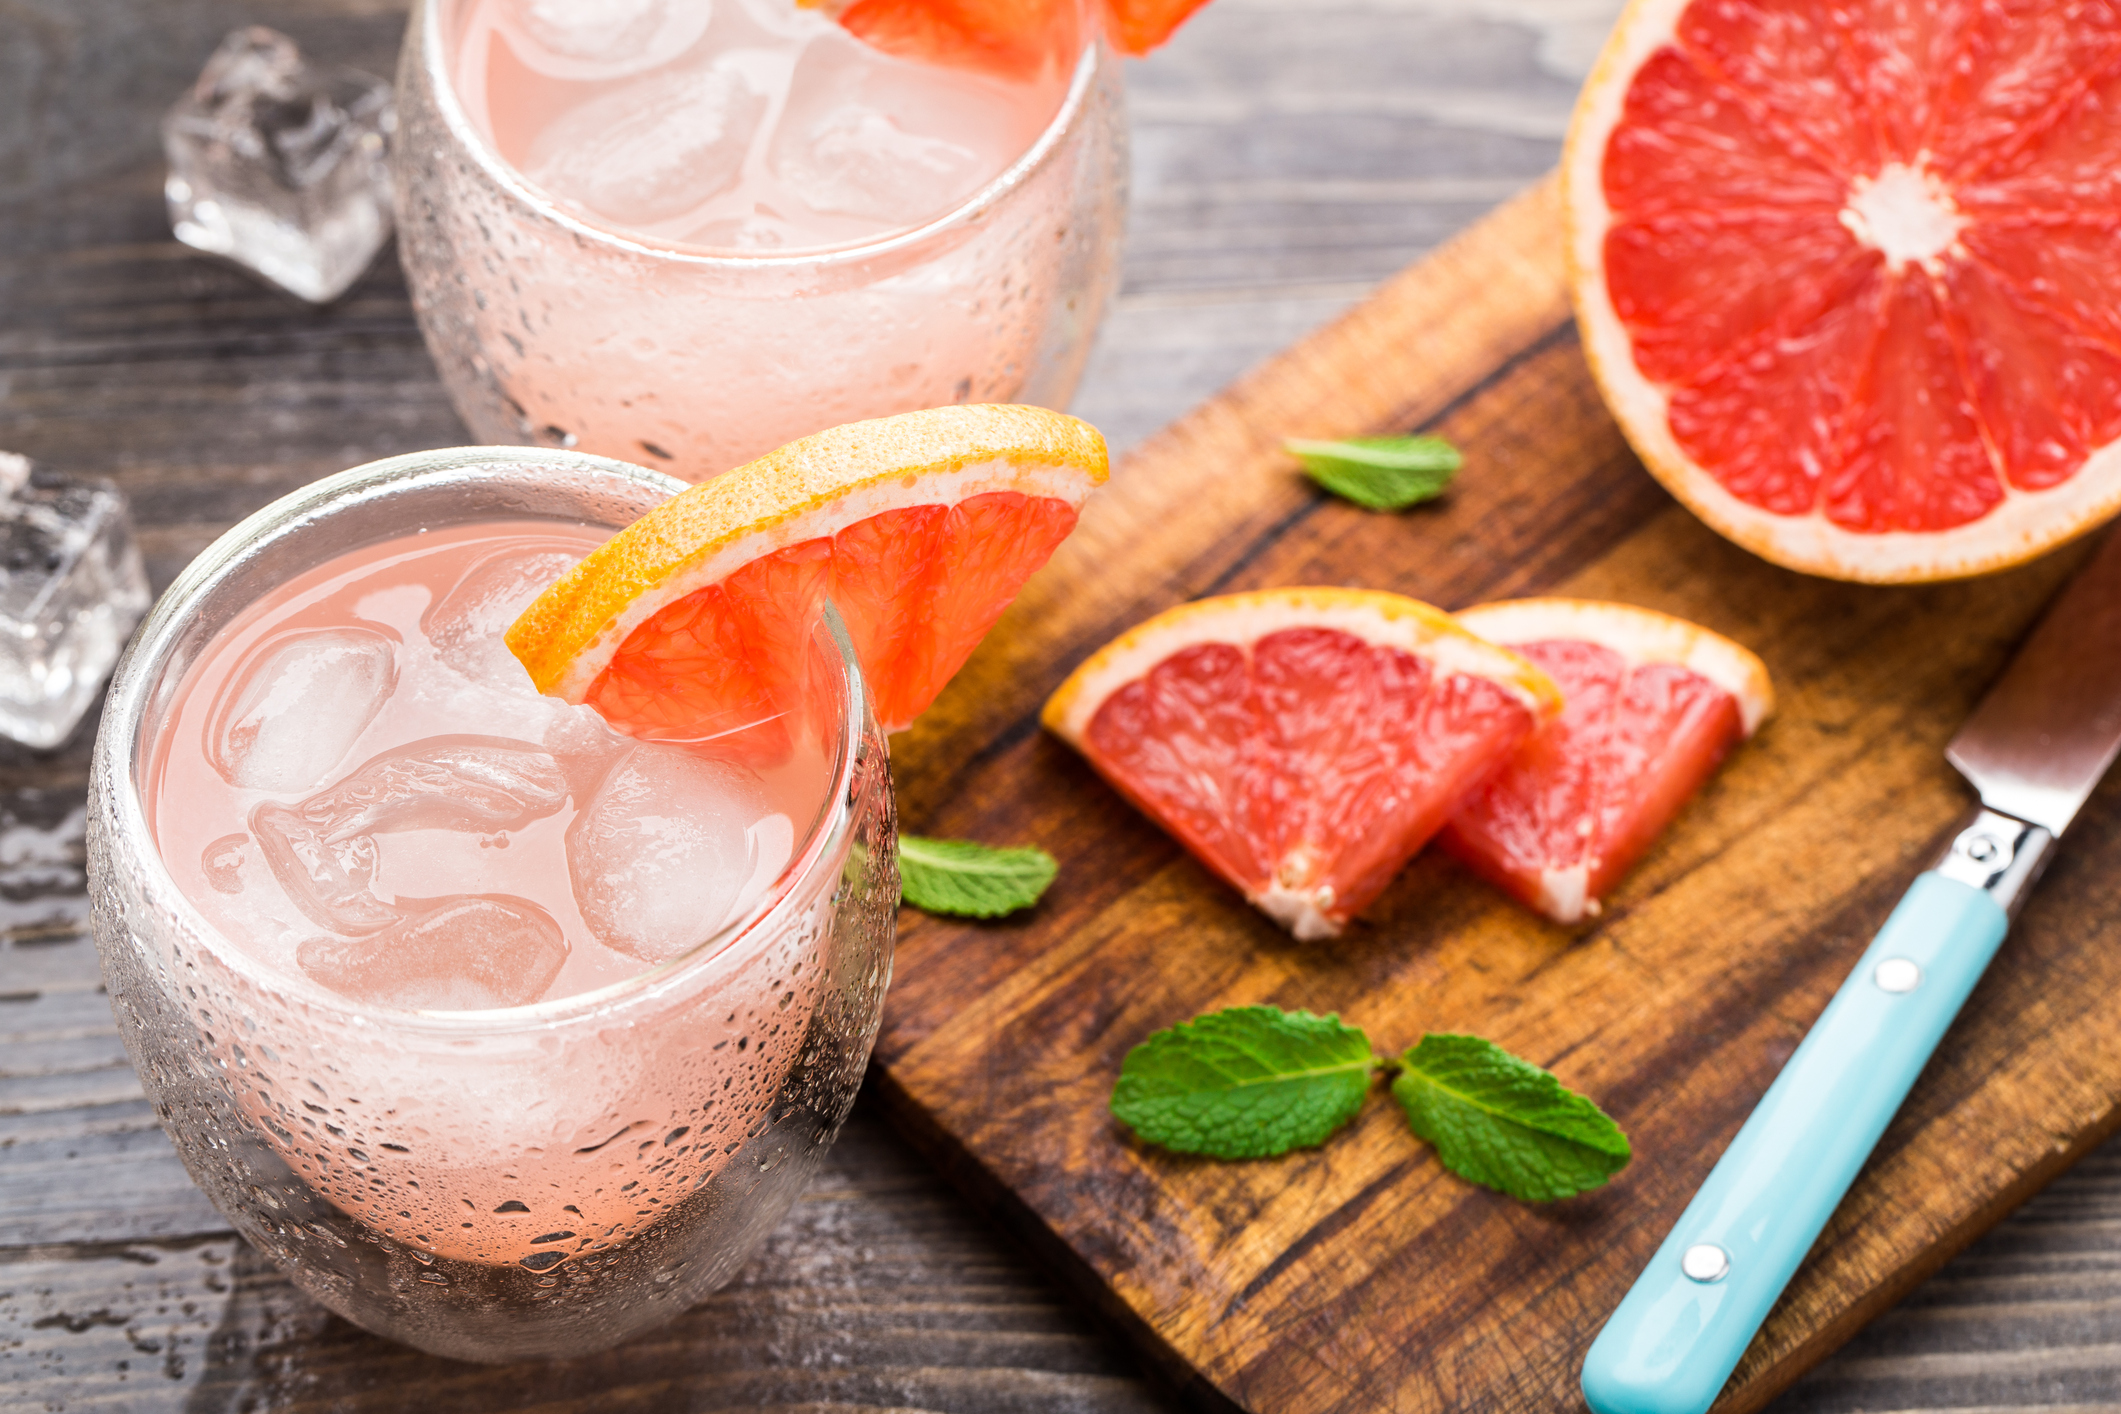 21 Things You Should Know About Grapefruit